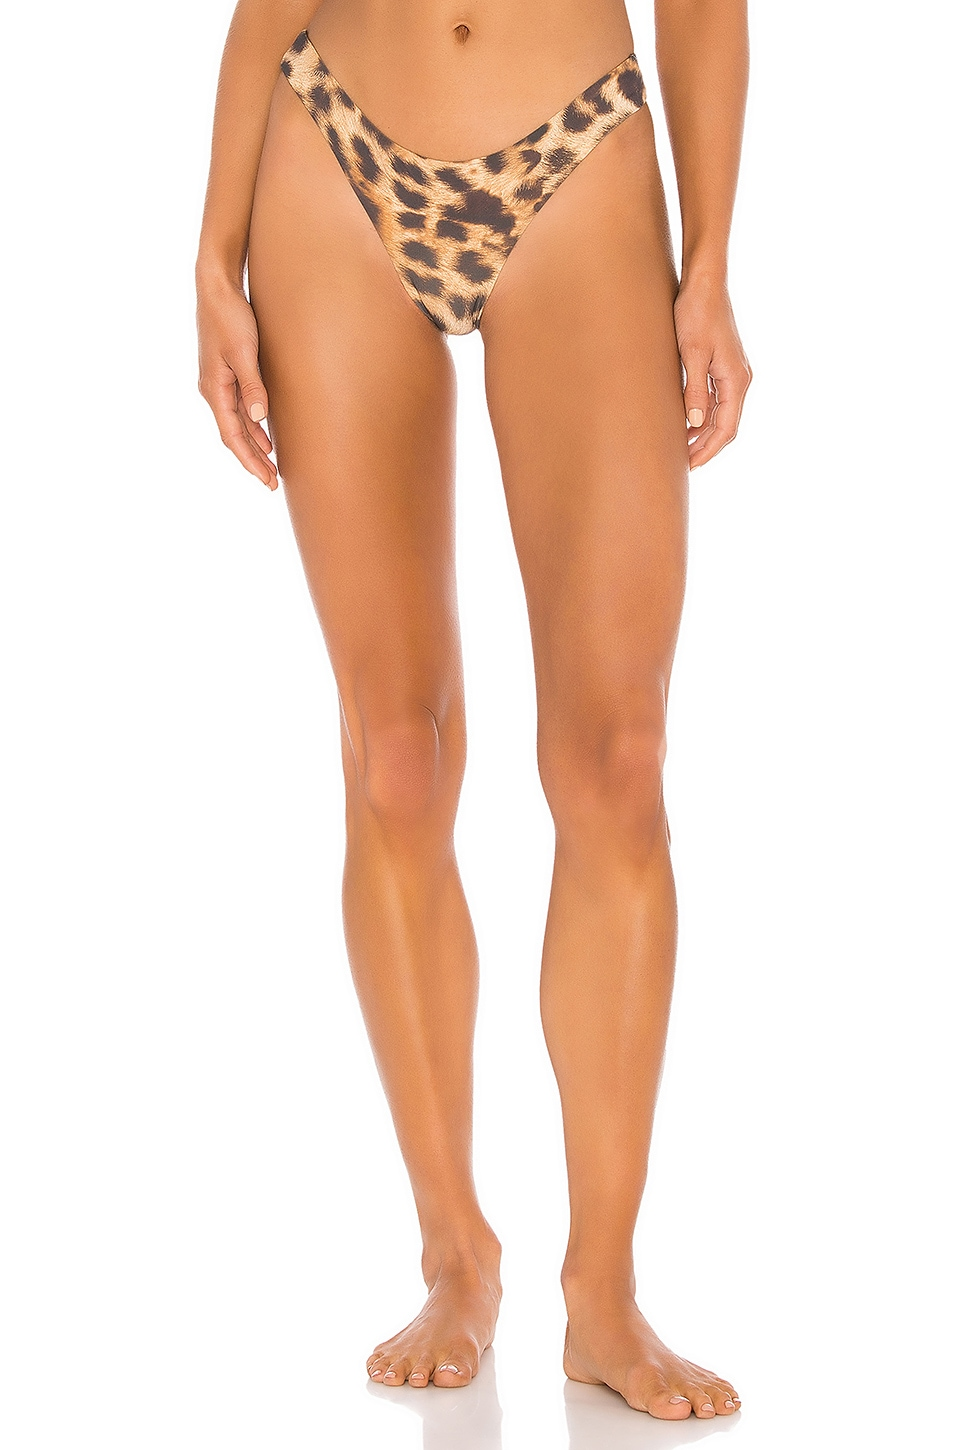 PILYQ Reversible Basic Teeny Bikini Bottom in Jungle